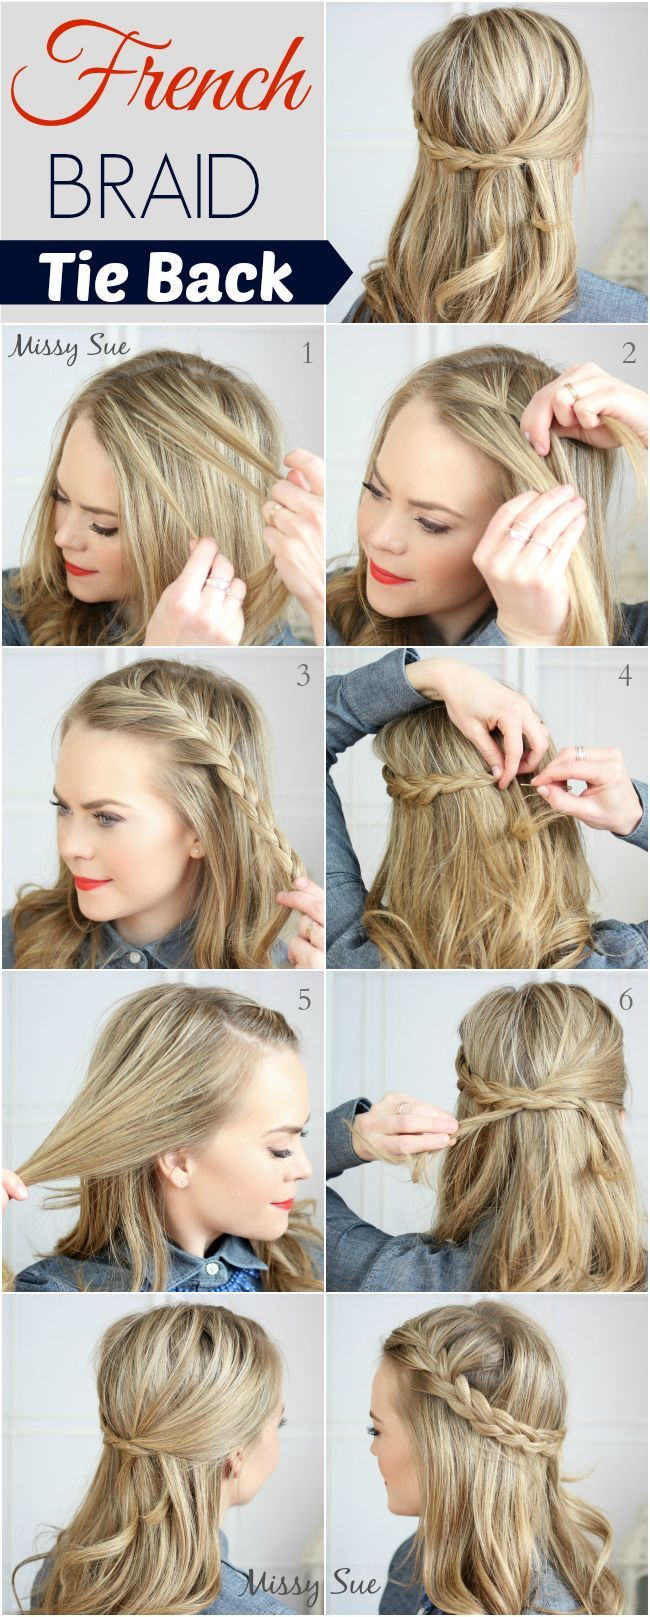 13 DIY Wedding Hairstyles To Try On Your Own: french braid tie back